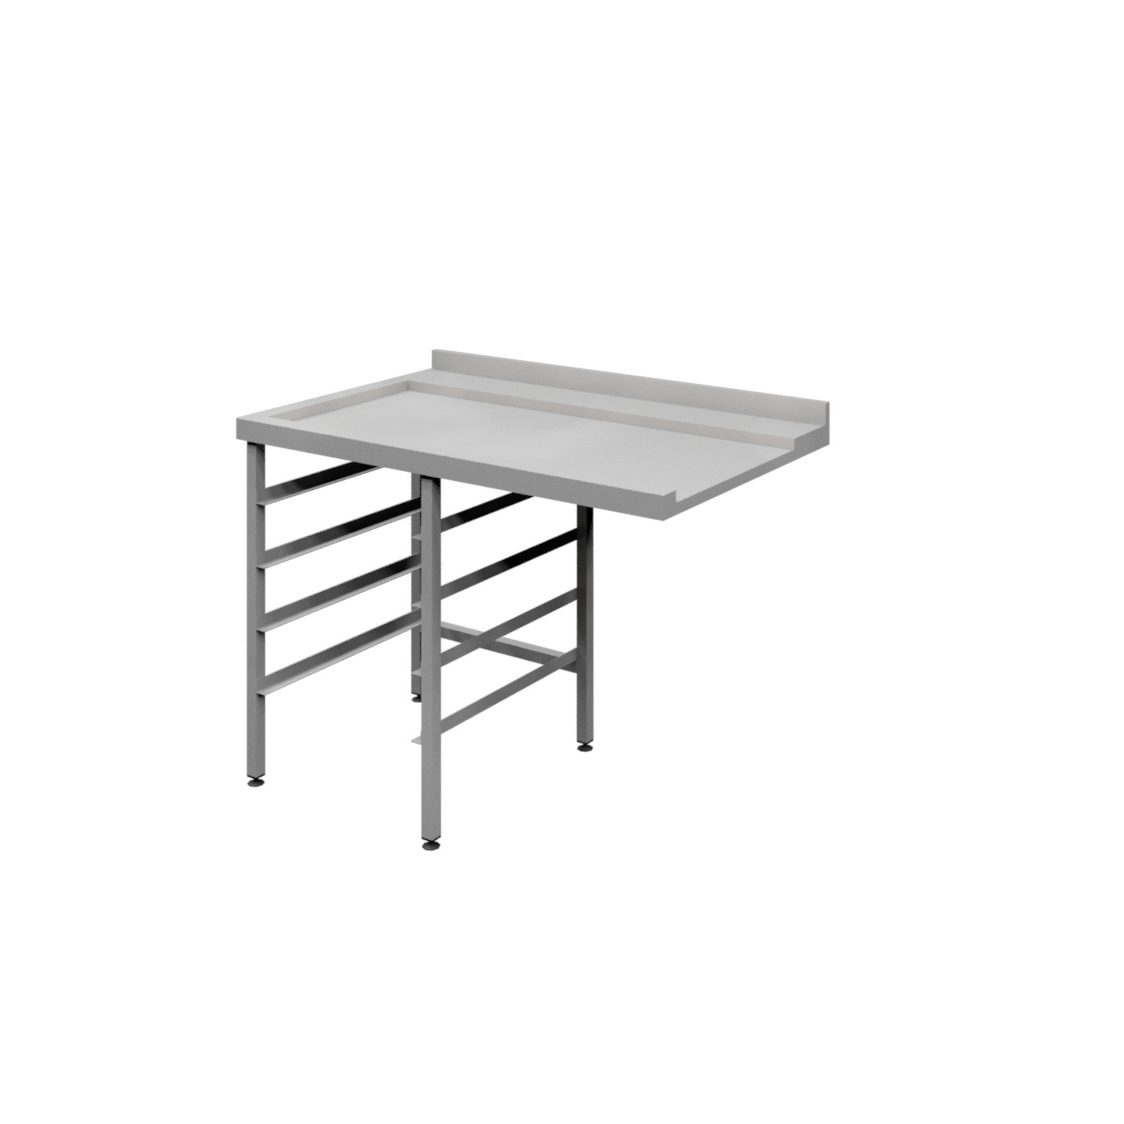 MCF_Dishwash Outlet Table_DO1200x740